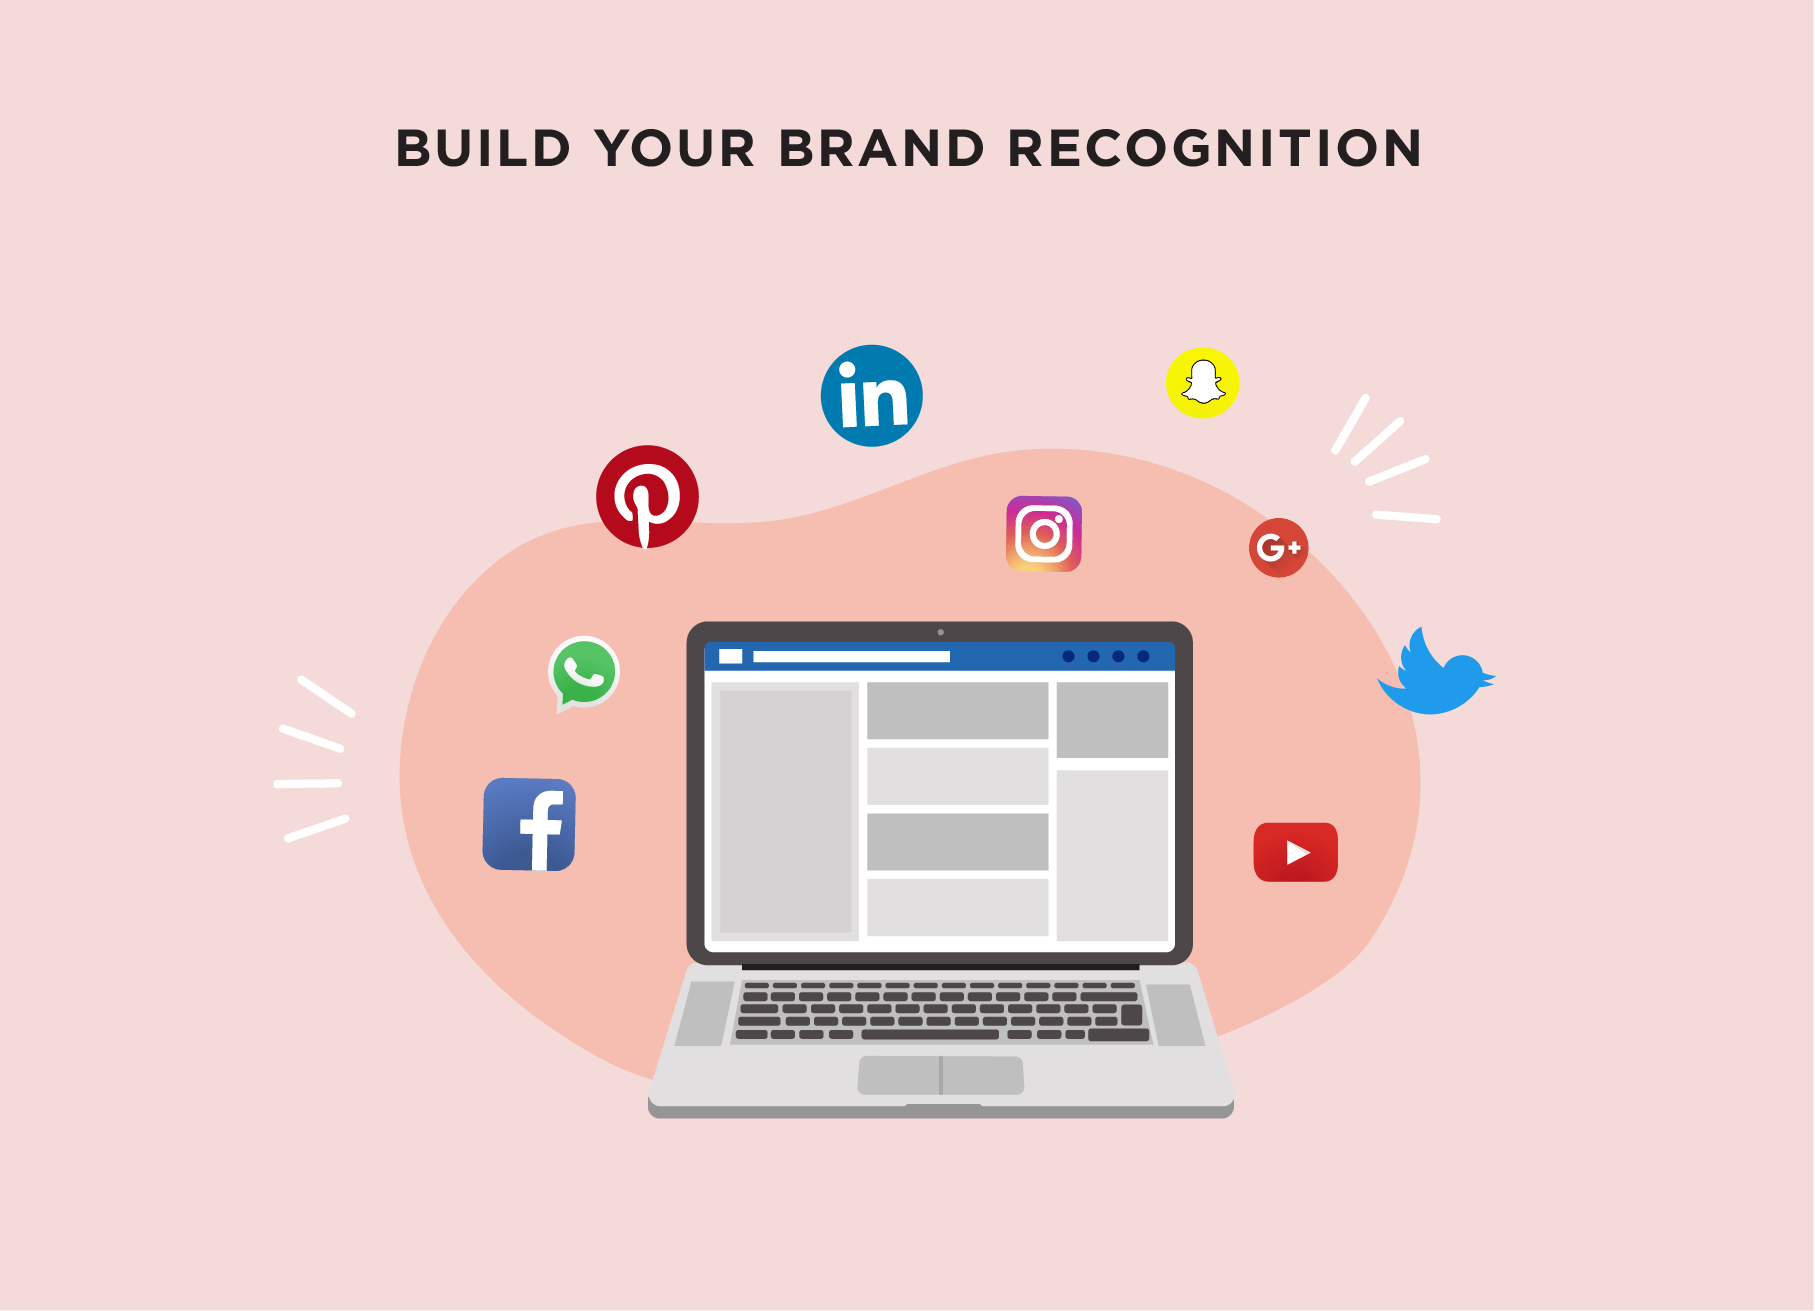 Develop your brand recognition through social media presence